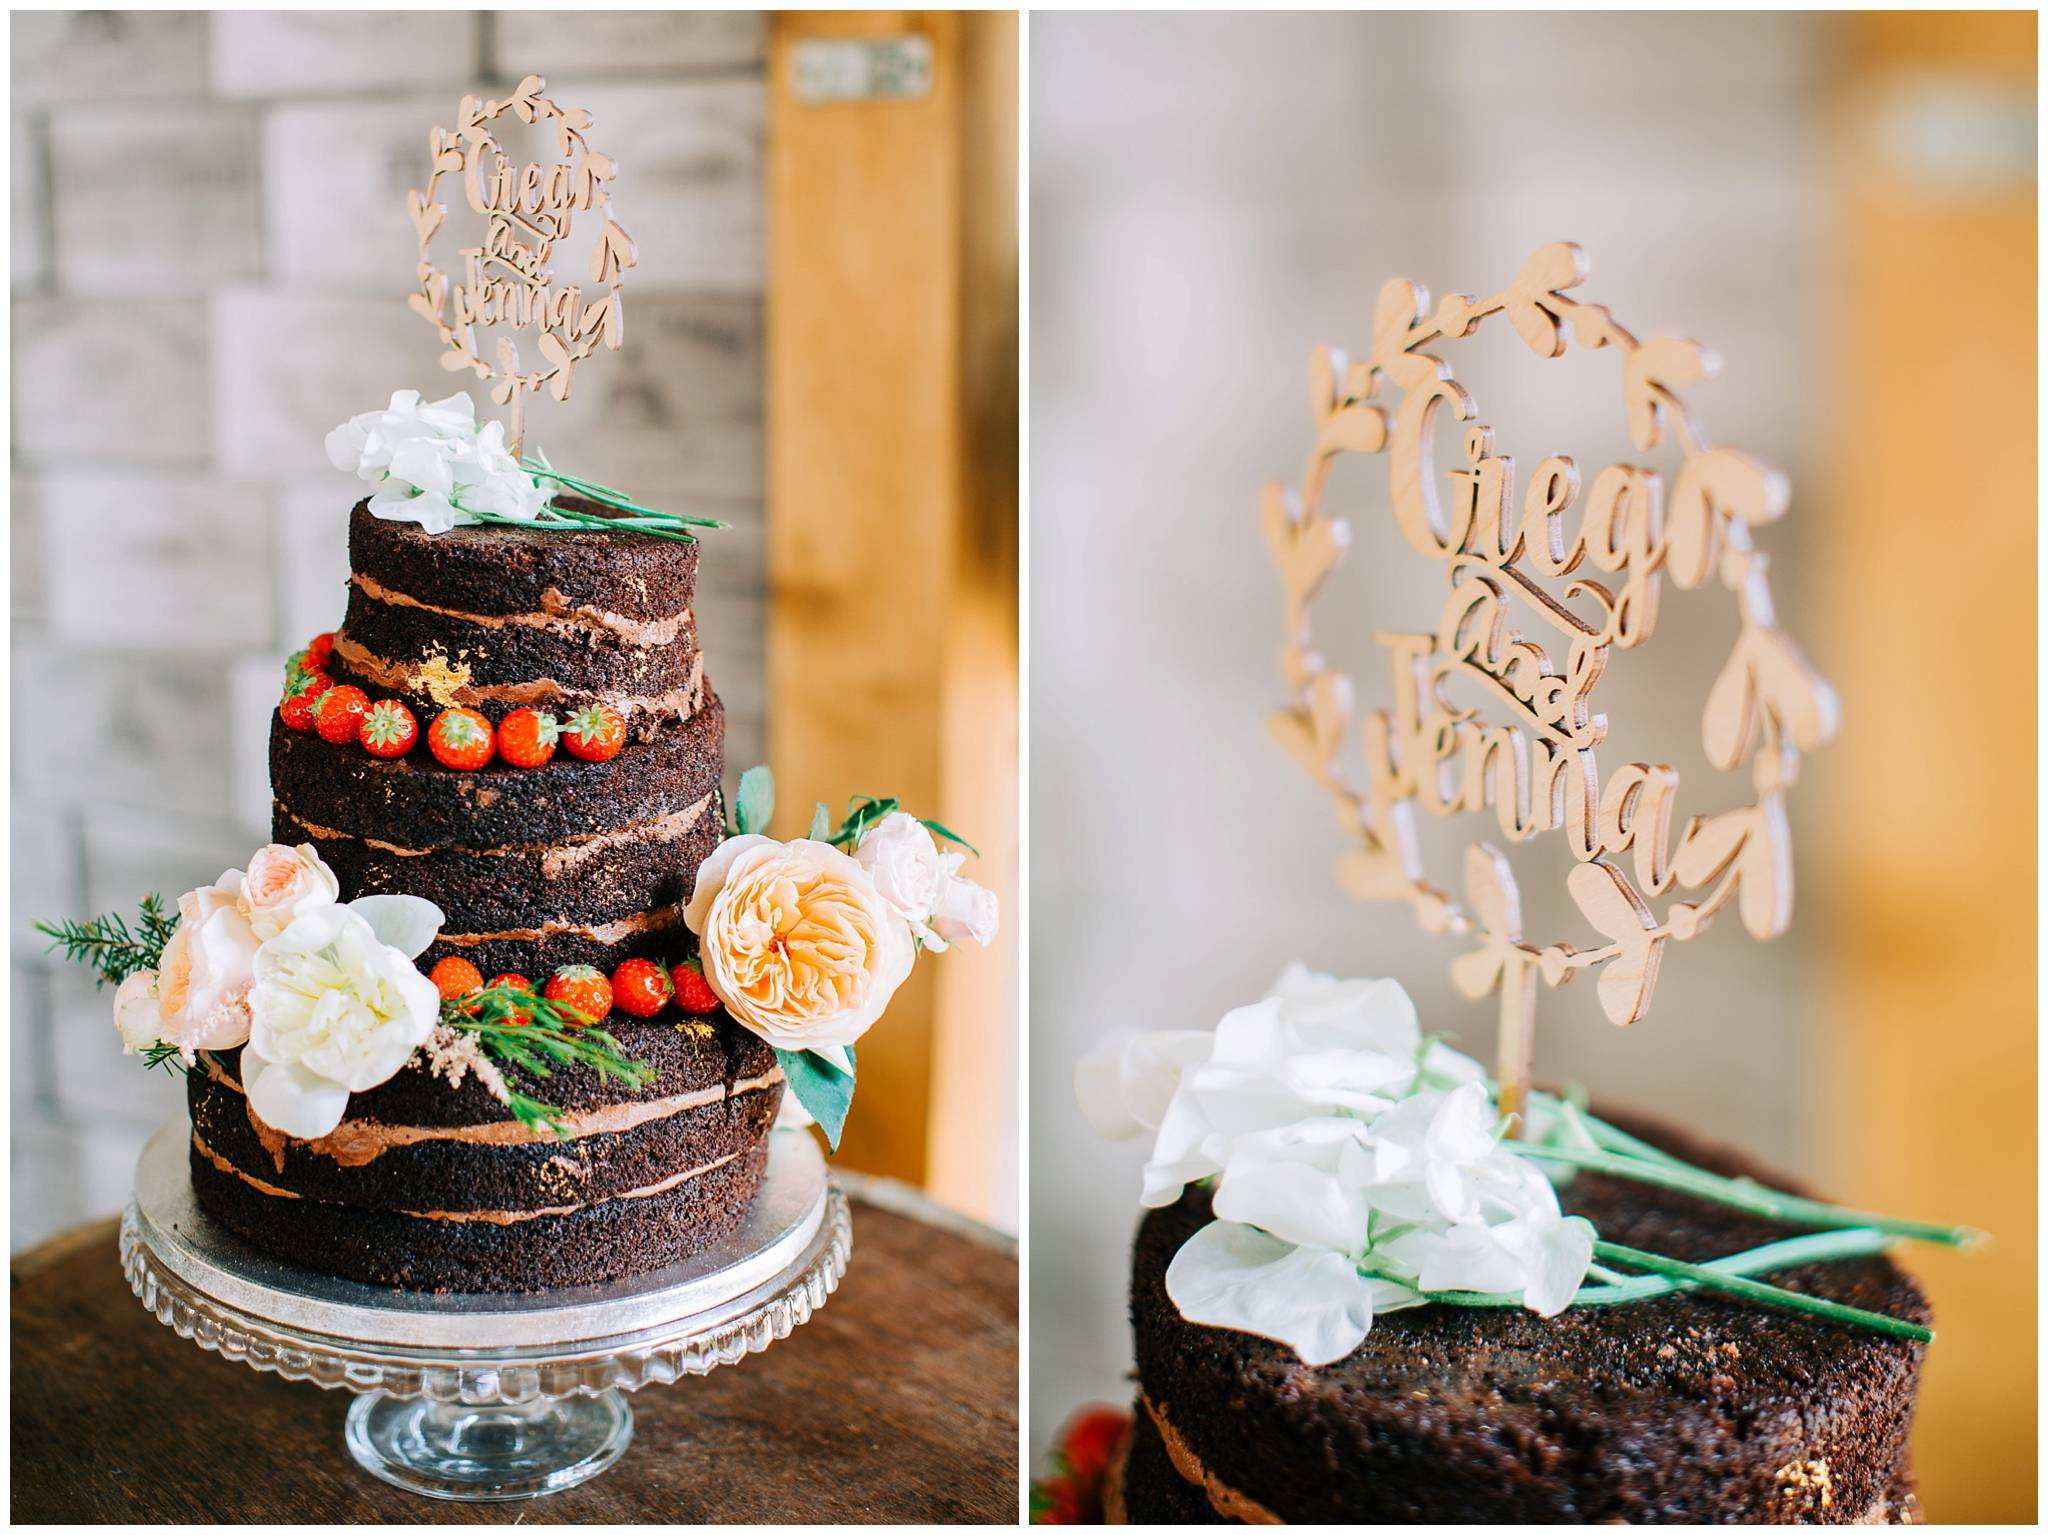 nakes choclate sopinge wedding cake with gold leaf and strawberries